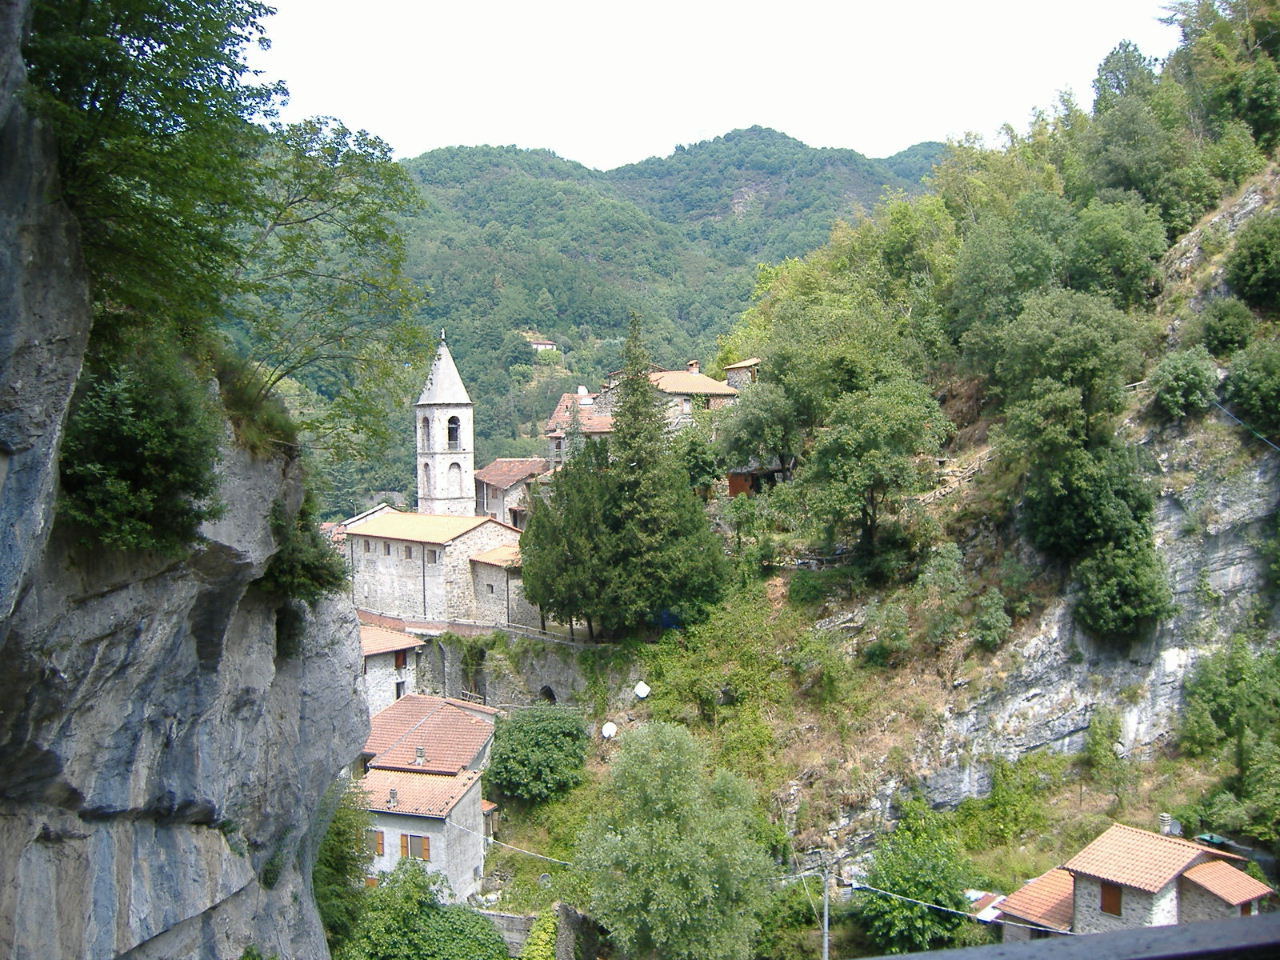 Image of Equi Terme.